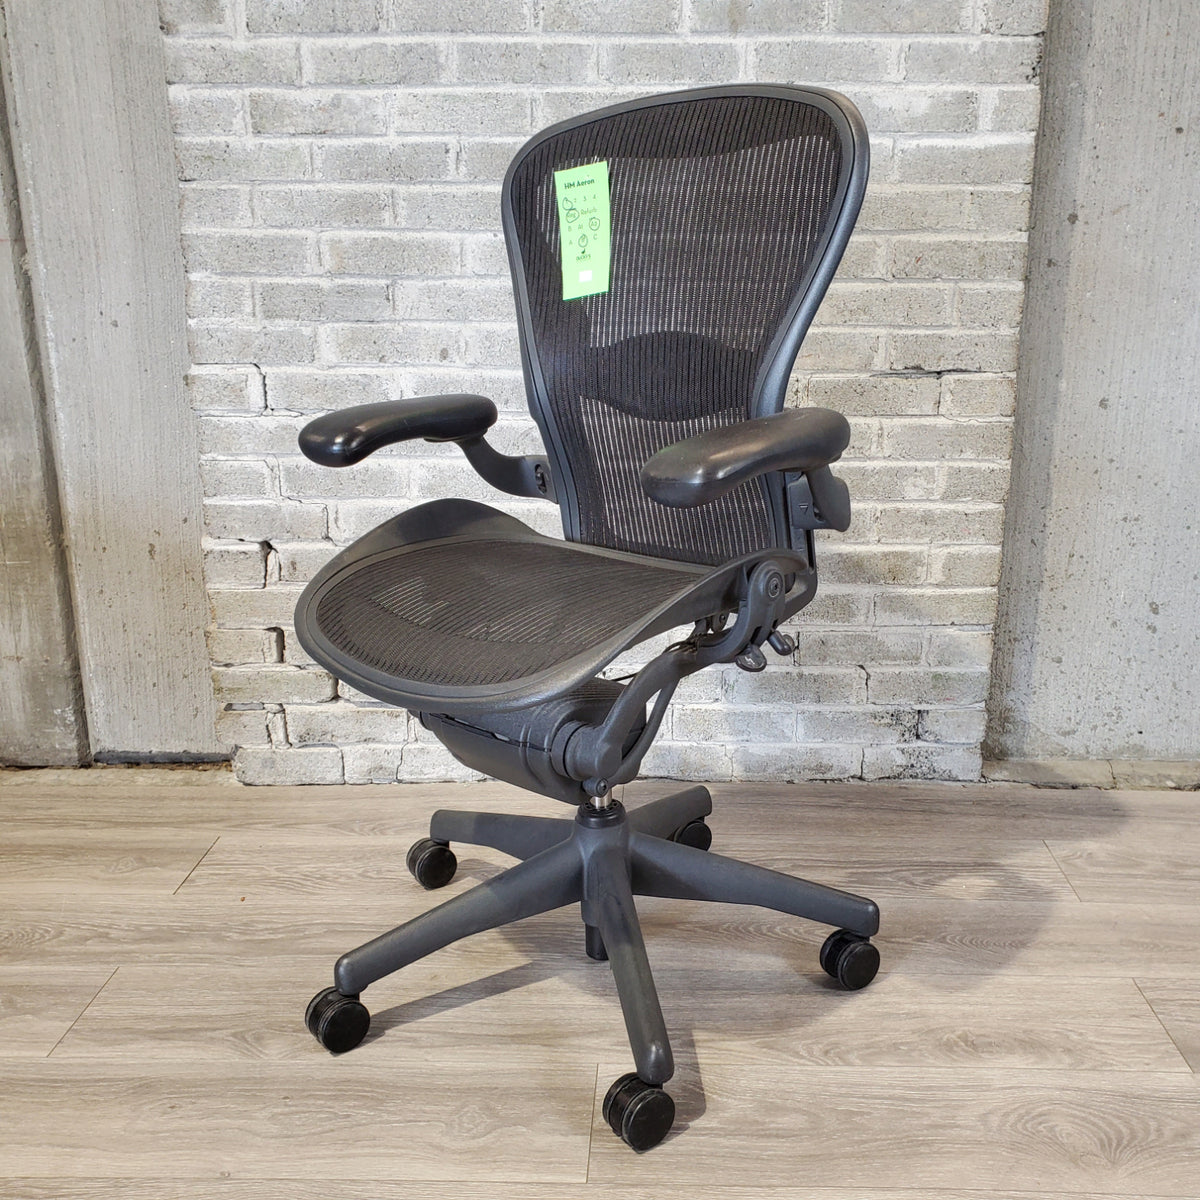 Pre-Owned - Used Herman Miller Aeron Chair- with Forward Tilt- Size B - BLACK - 1RA2B - Duckys Office Furniture